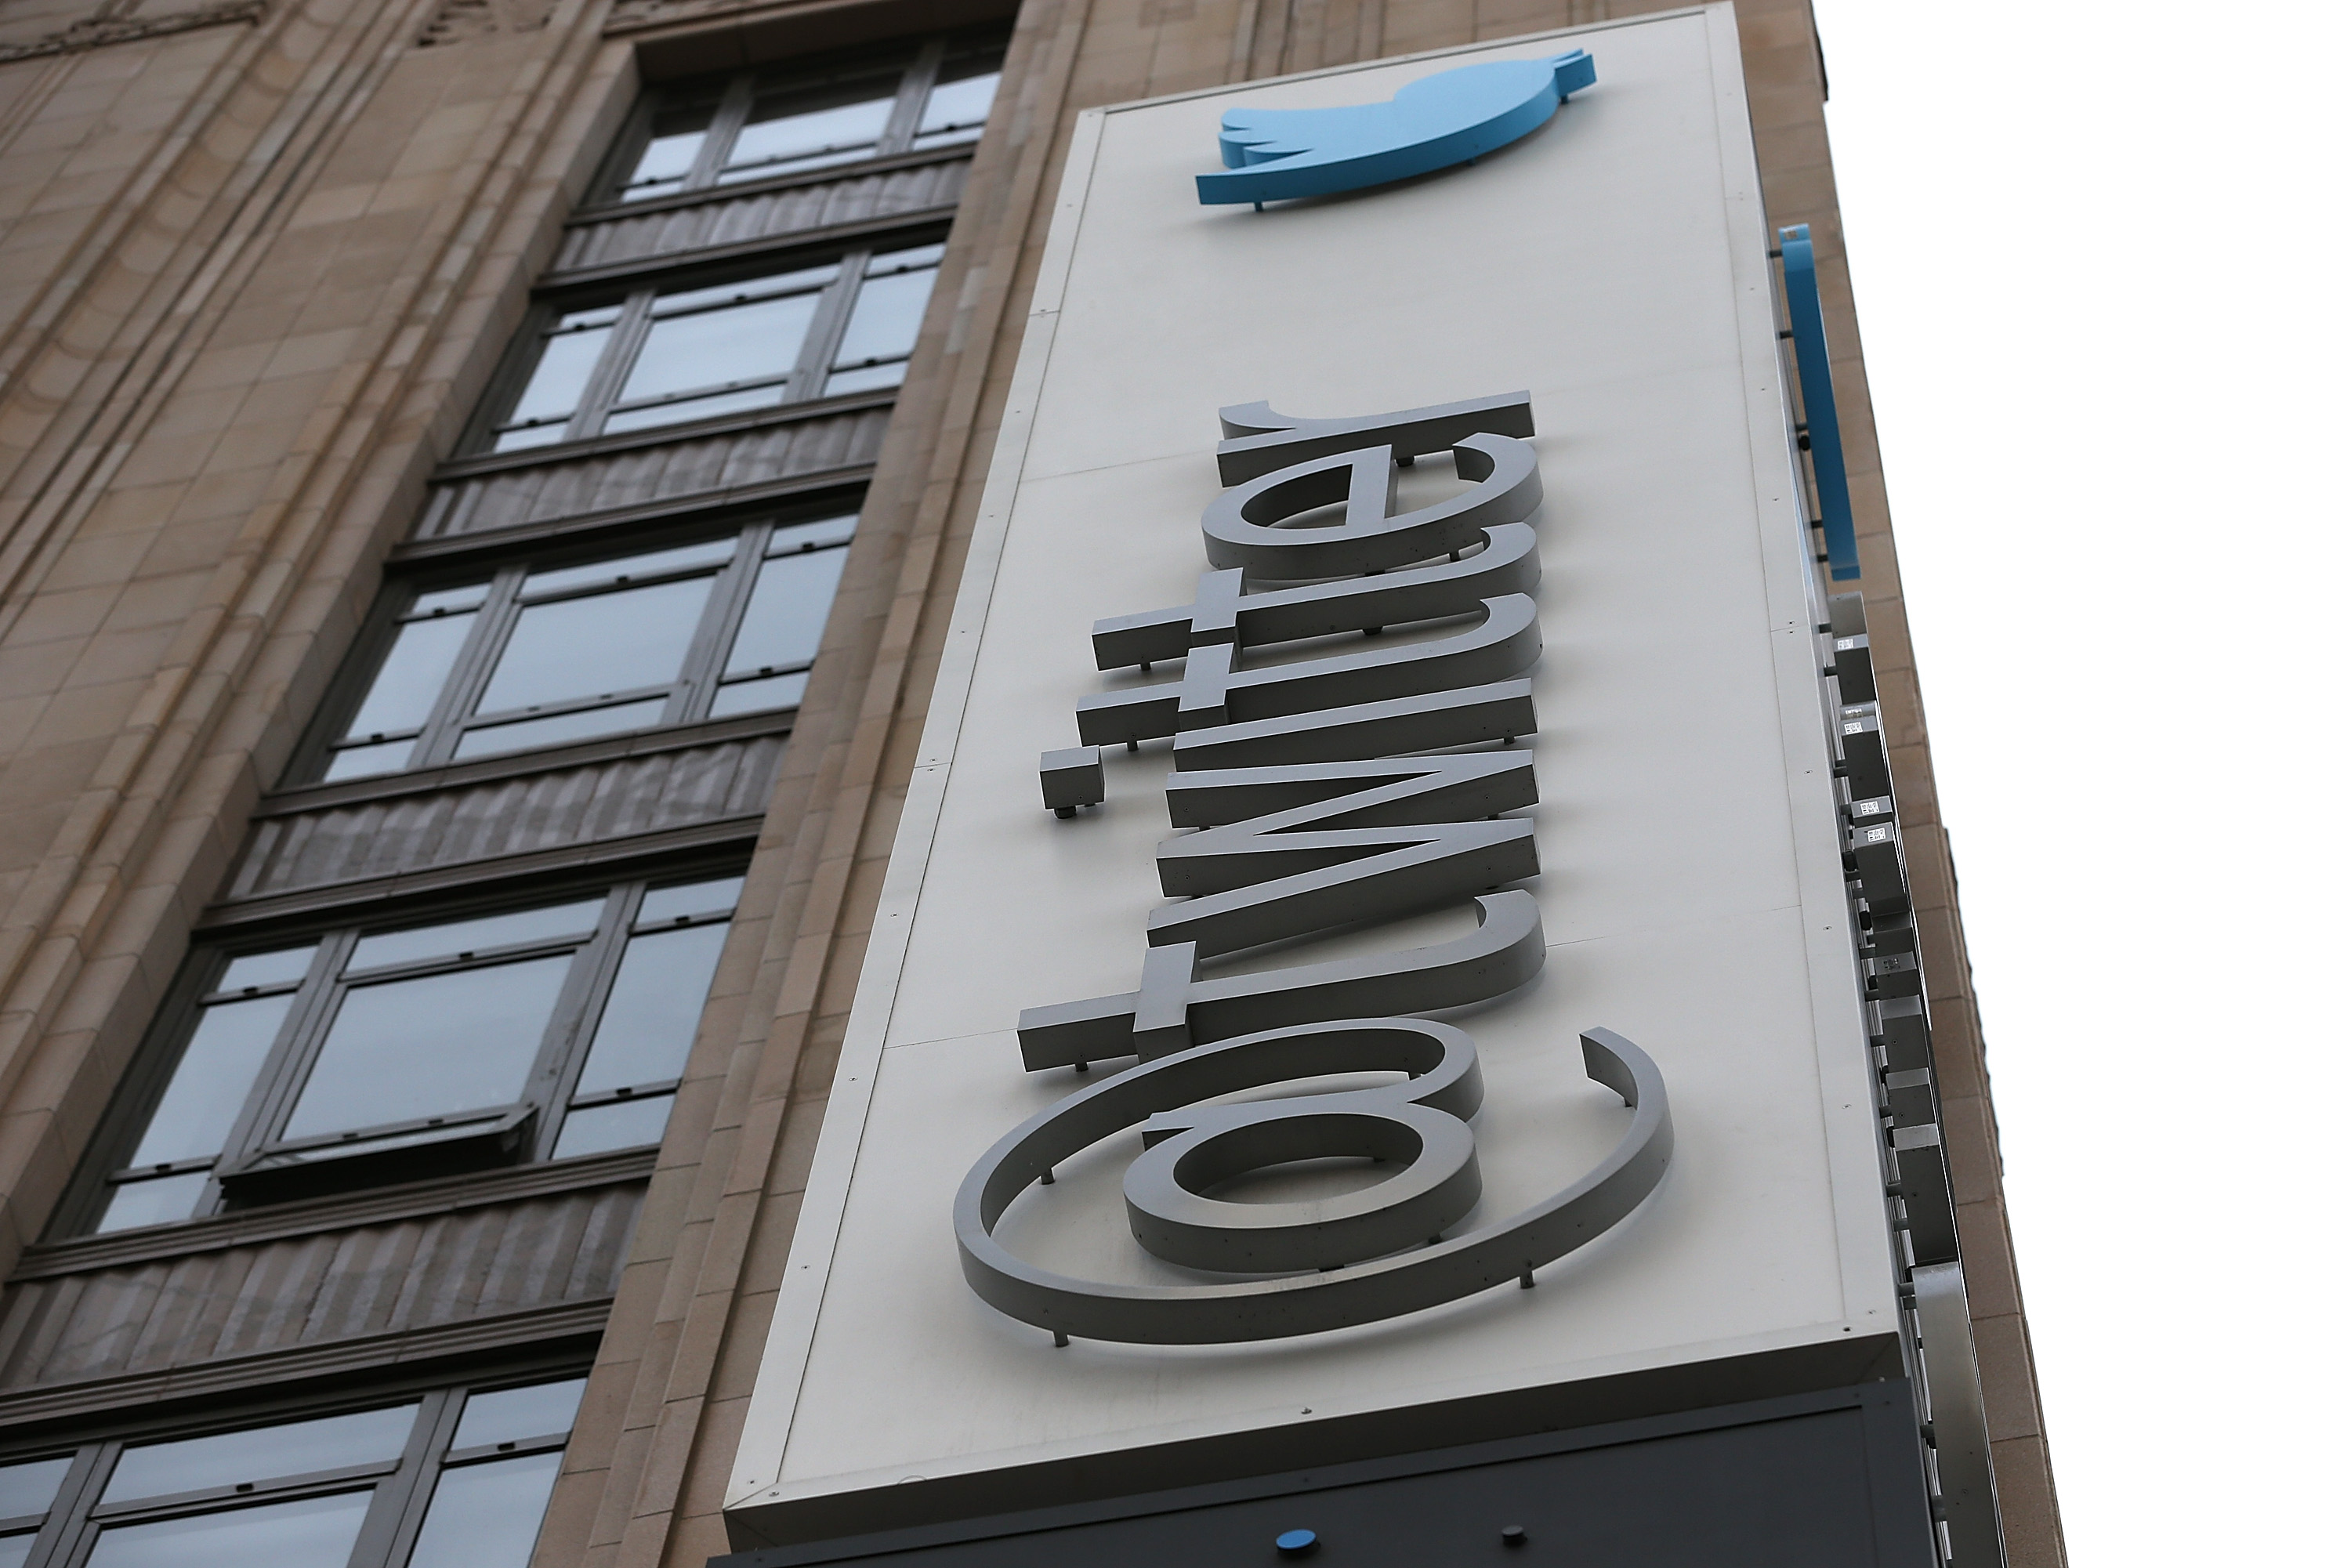 The exterior of the Twitter headquarters on February 5, 2014 in San Francisco, California.